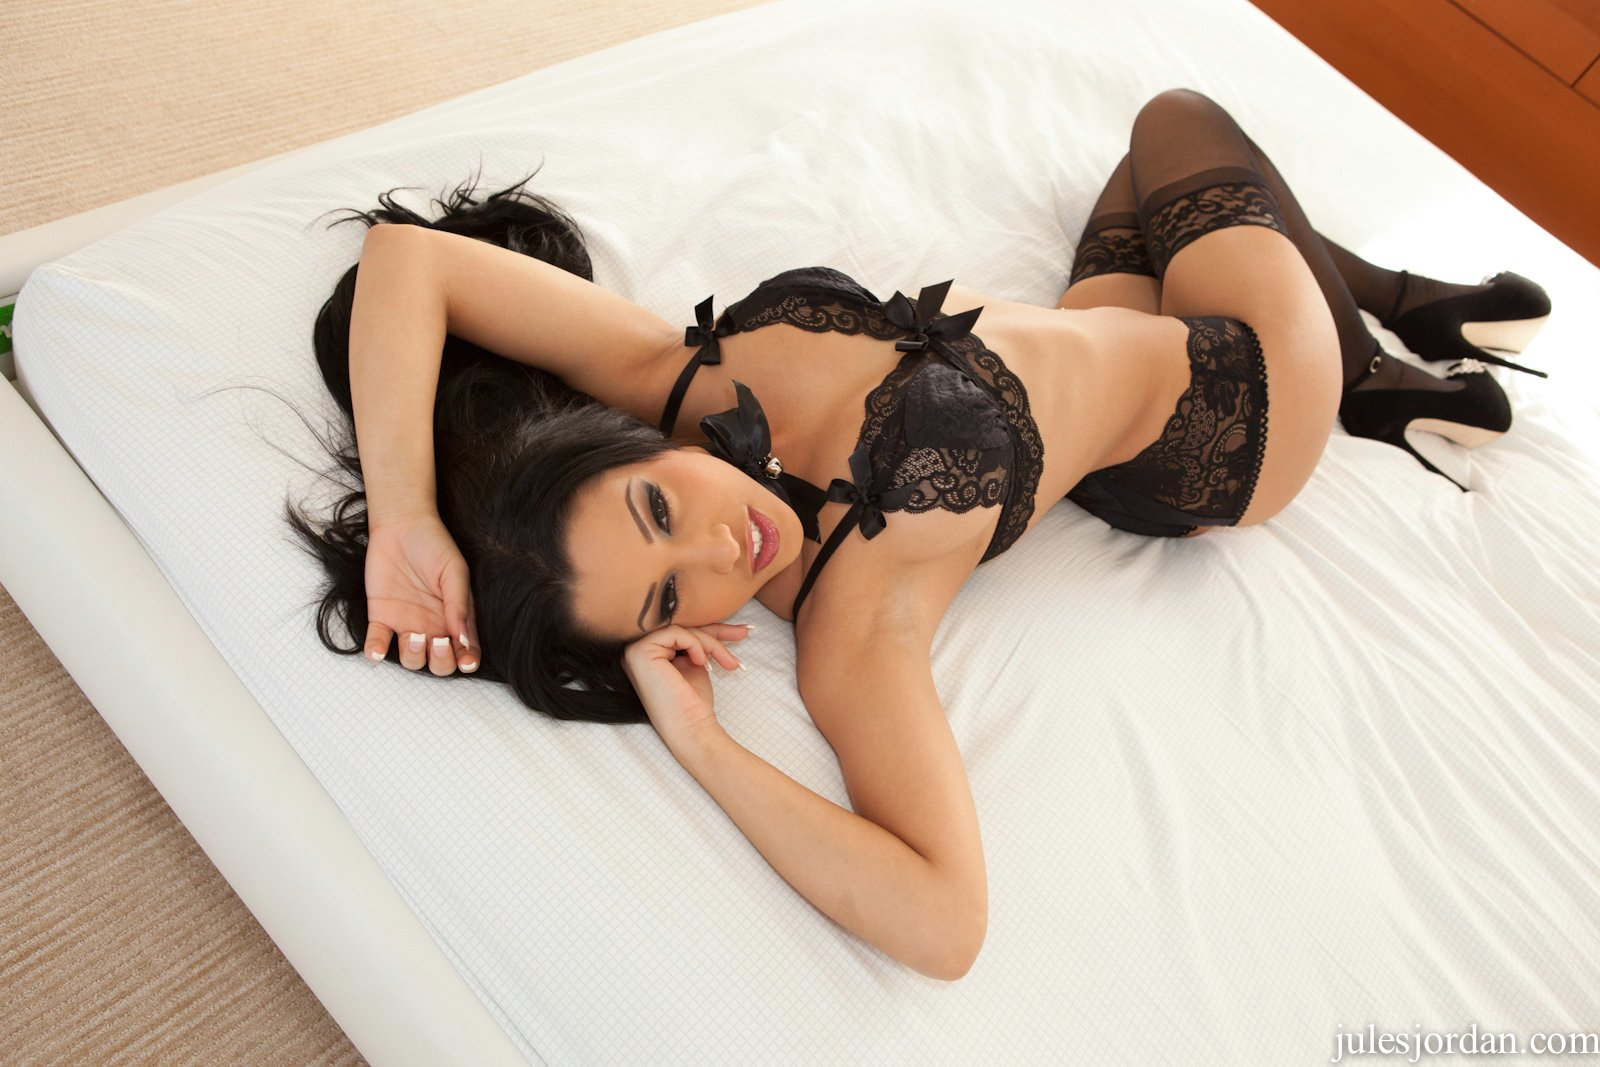 stockings Abella anderson in